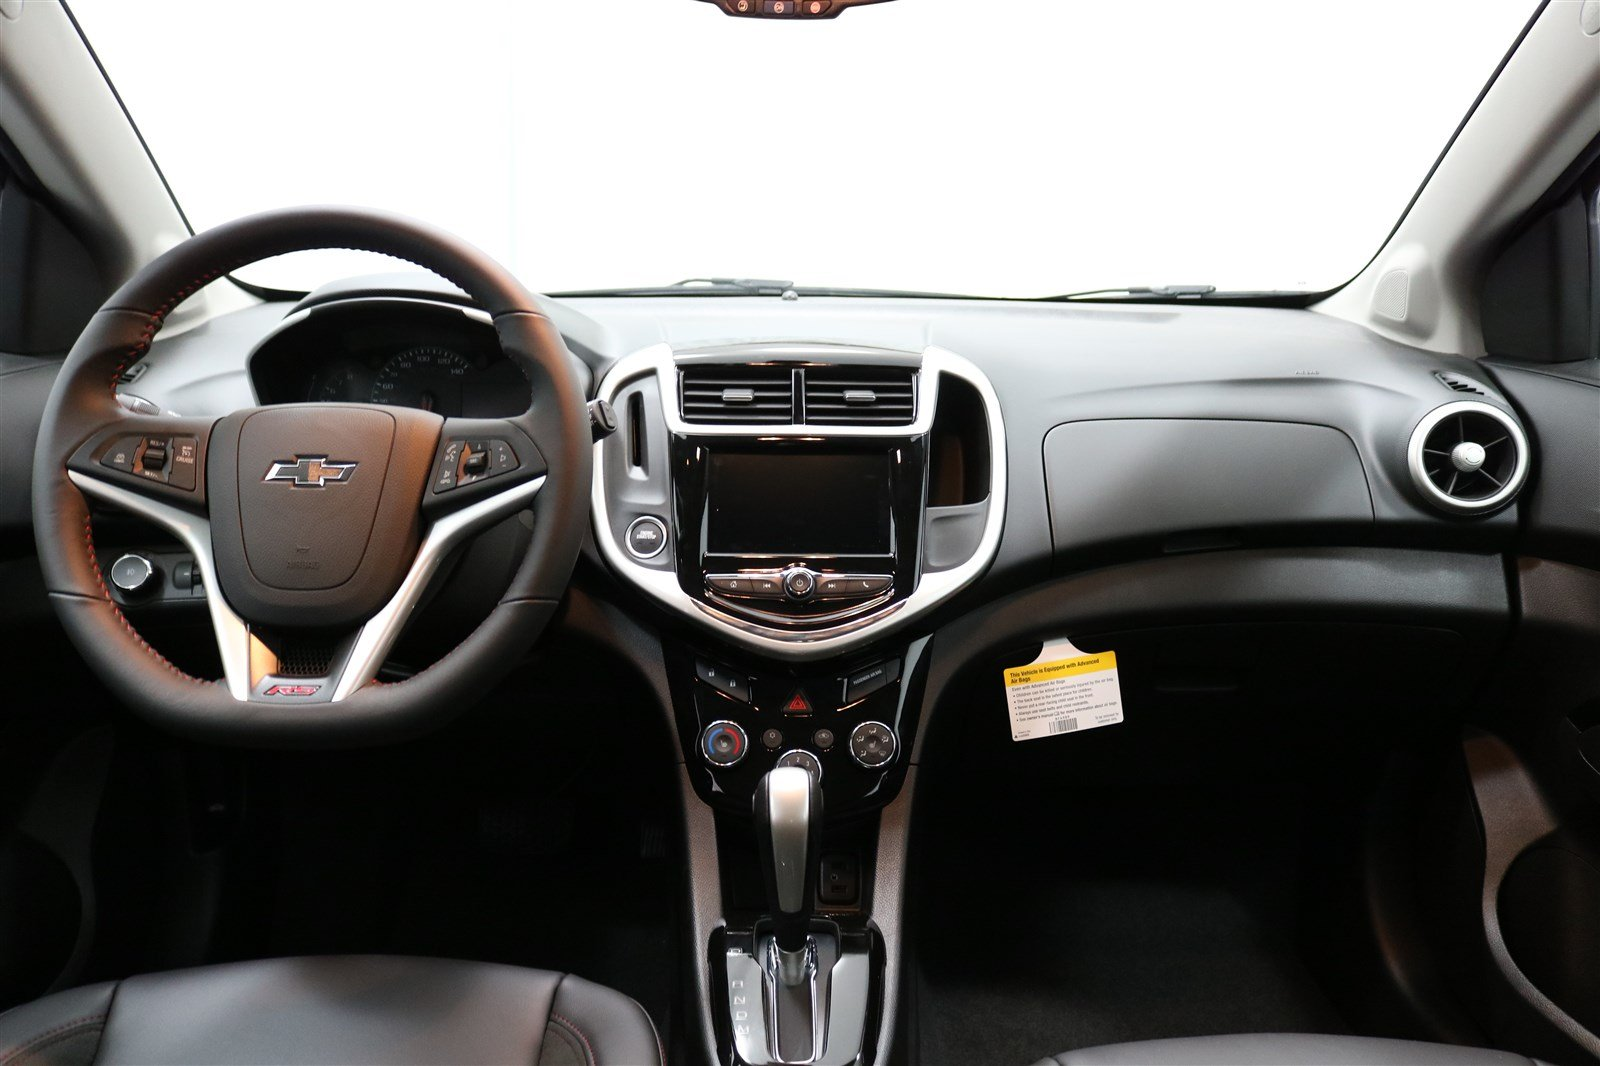 Chevrolet Sonic Owners Manual: Bluetooth (Infotainment Controls)